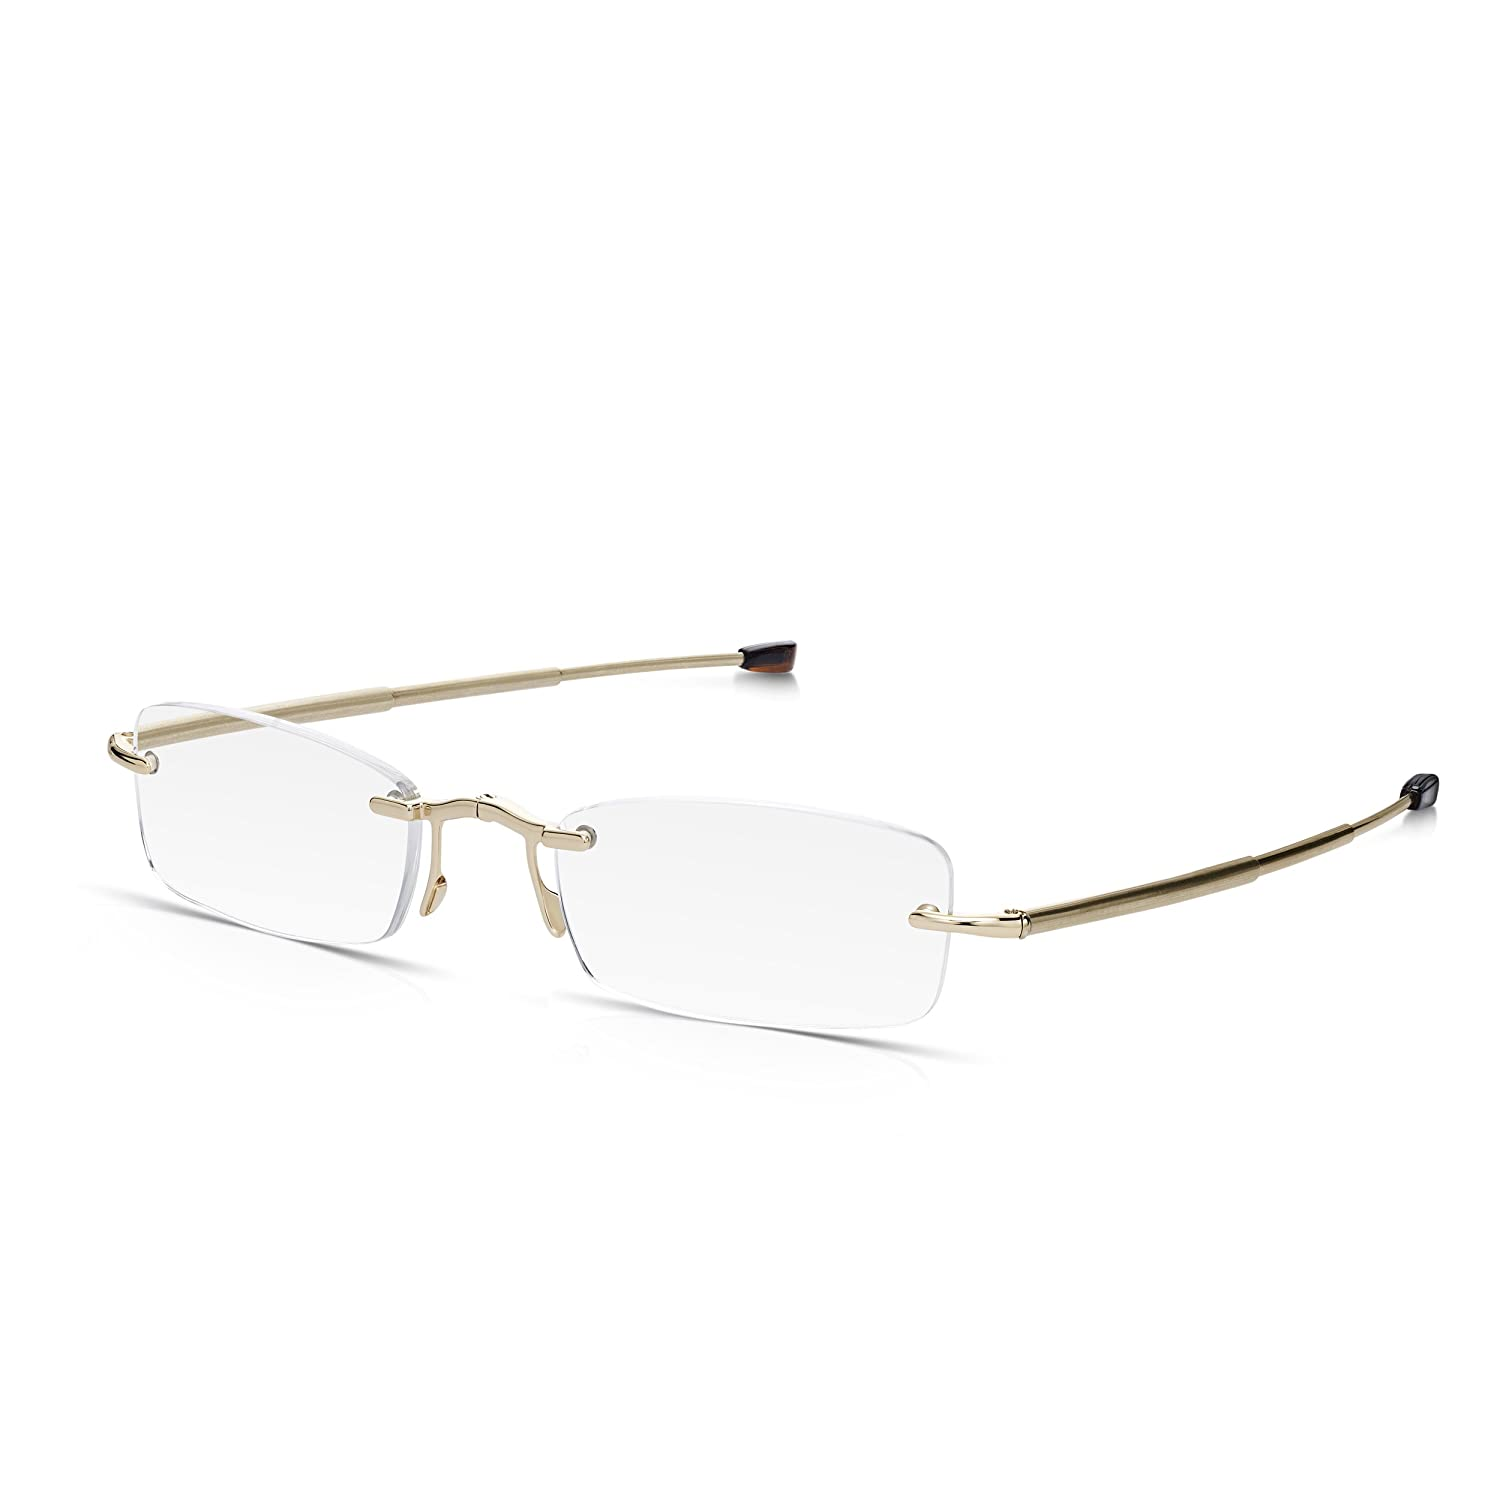 2.5 Read Optics 2 Pack Compact Folding Reading Glasses Telescopic Arms in Gold Stainless Steel for Men and Women Plus Free Slim Pocket Size Hard Case Rimless Rectangular Optical Quality Lenses